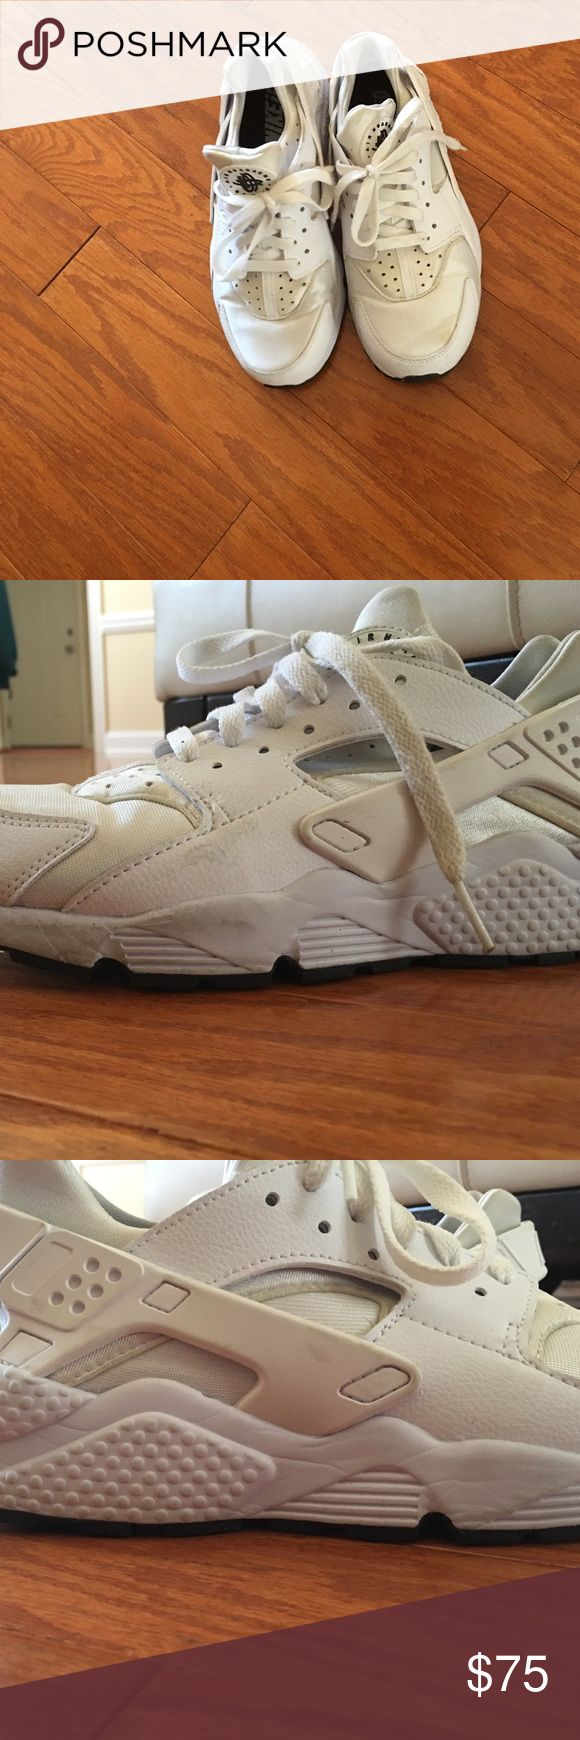 Black and White Nike ID Huaraches This a pair of customized Nike Air Huaraches. These are in fair condition and need cleaning. I have worn the shoes many times, but I will ship them in the best condition. The shoes came from Nike ID. They do fit snug. Nike Shoes Sneakers